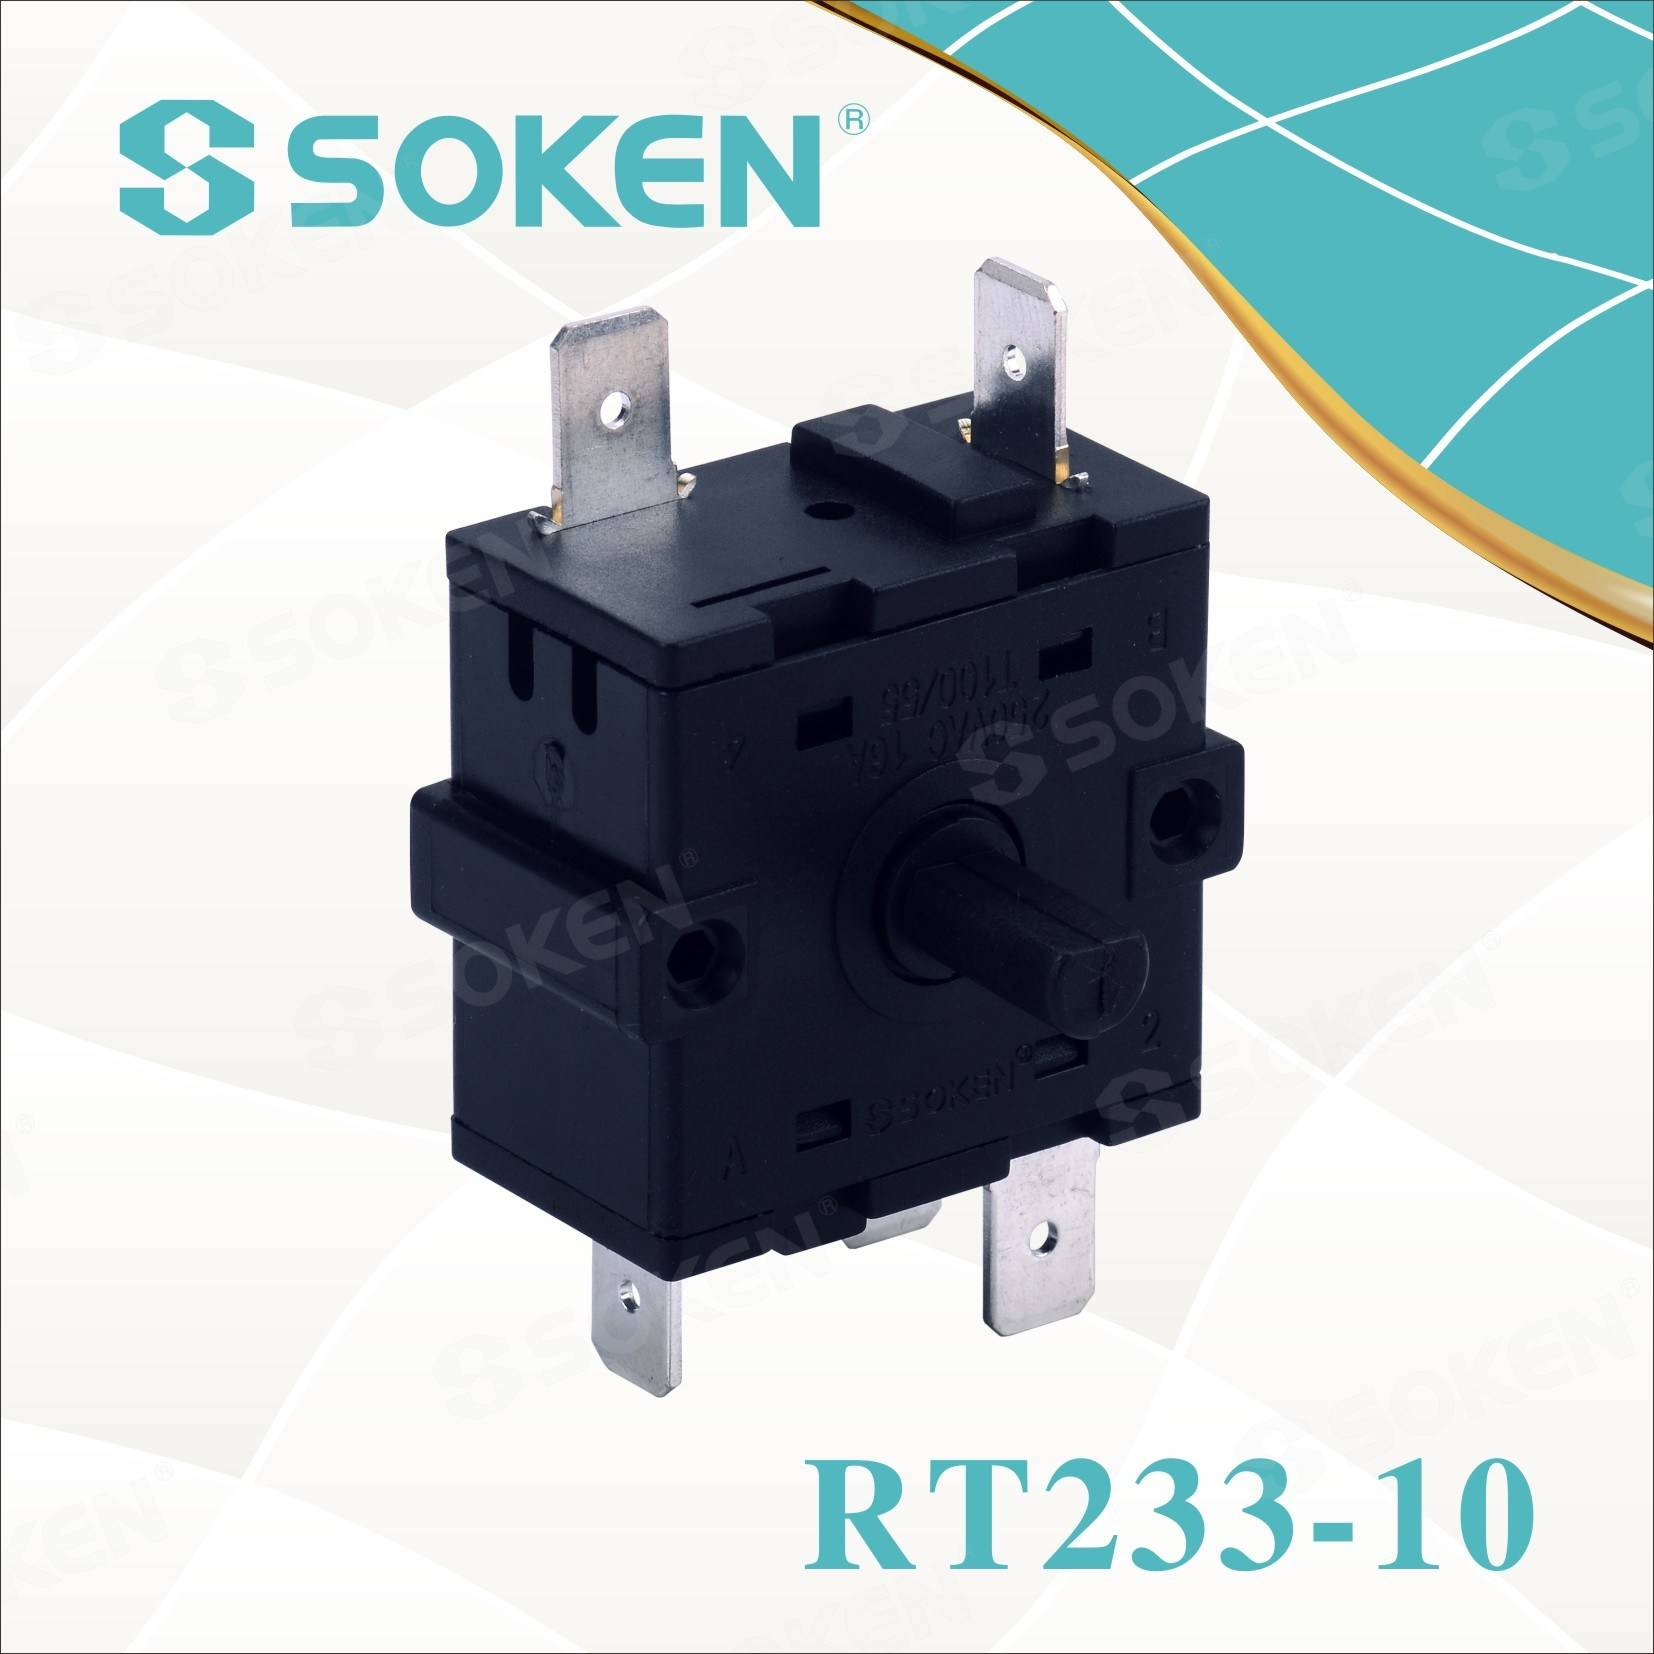 Soken Olieverwarmer Rotary Switch